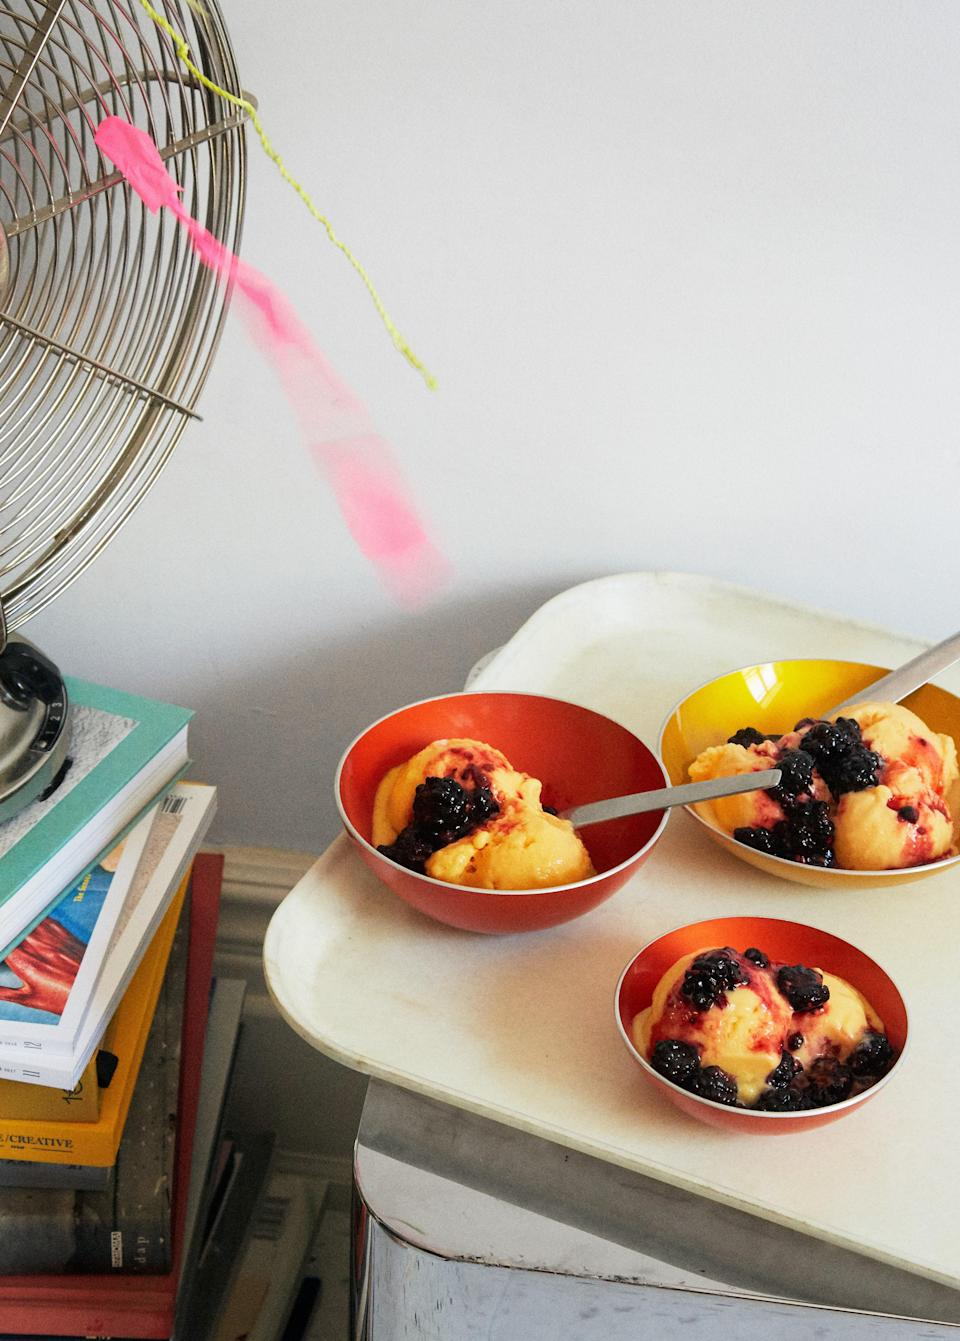 "The splash of vodka we add to this fruity sorbet recipe is the key to a smooth frozen treat: The alcohol helps prevent big ice crystals from forming, making the sorbet easier to scoop out of the loaf pan. Just don't add more than a couple of tablespoons—too much alcohol will cause the sorbet to melt faster. This recipe is part of the 2020 Healthyish Farmers Market Challenge. Get all 8 recipes <a href=""https://bonappetit.com/collection/healthyish-farmers-market-challenge-2020"" rel=""nofollow noopener"" target=""_blank"" data-ylk=""slk:here"" class=""link rapid-noclick-resp""><strong>here</strong></a>. <a href=""https://www.bonappetit.com/recipe/peach-sorbet-with-crushed-blackberries?mbid=synd_yahoo_rss"" rel=""nofollow noopener"" target=""_blank"" data-ylk=""slk:See recipe."" class=""link rapid-noclick-resp"">See recipe.</a>"